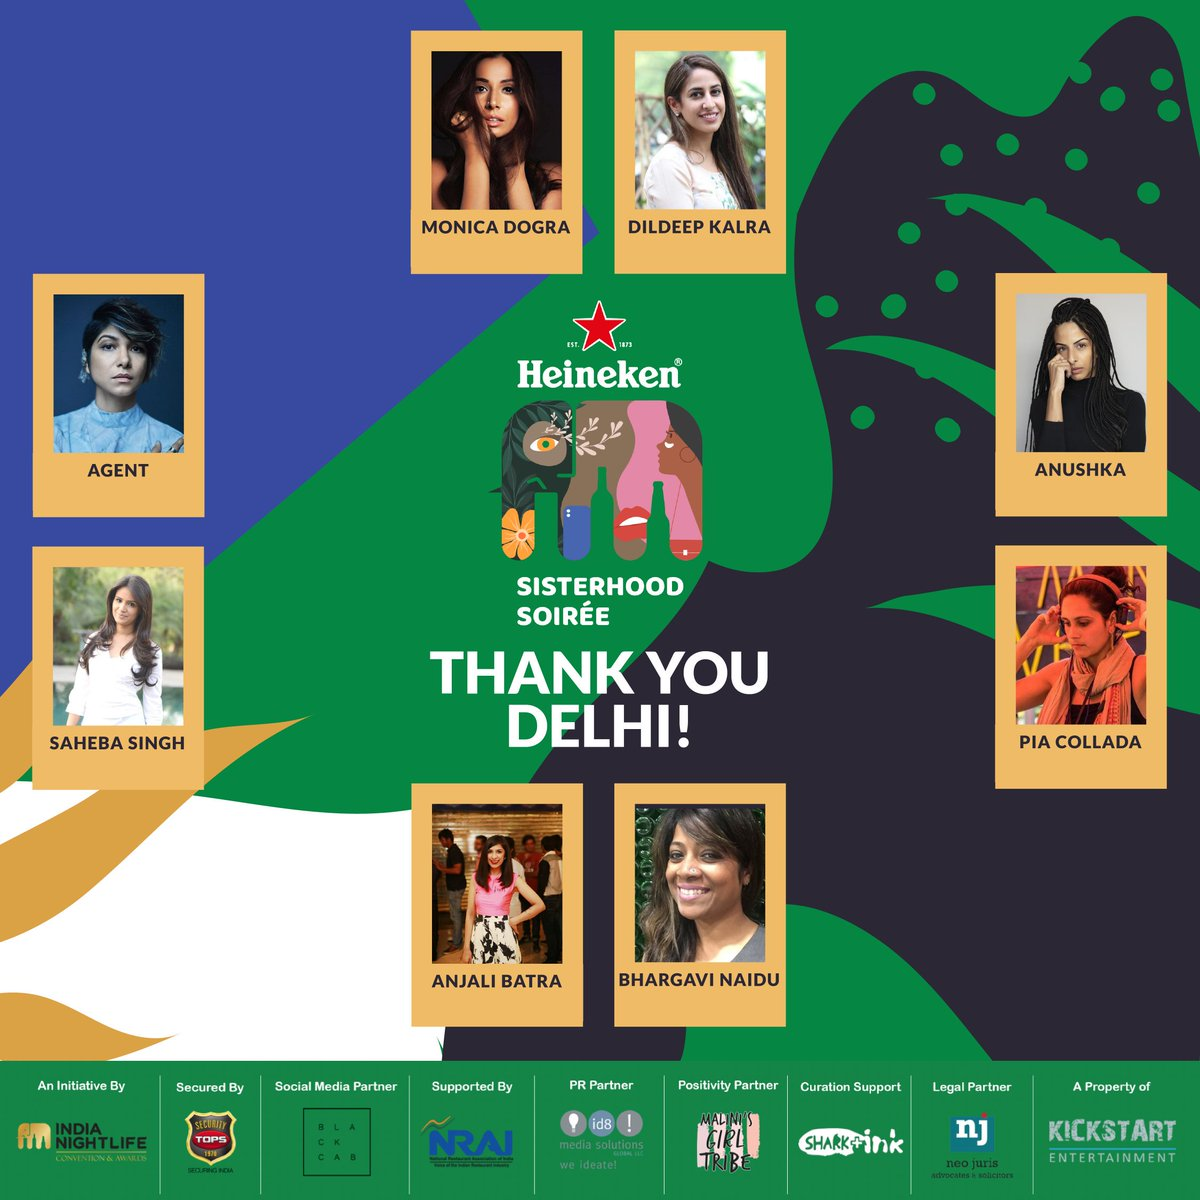 Delhi, you were amazing! Thank you to all the panelists for coming out sharing your treasure trove of wisdom with us and thank you to all the DJ's- our hearts are still thumping to your beats! Thank you again, for a truly memorable night!  #sisterhoodsoiree #Heineken #Delhi